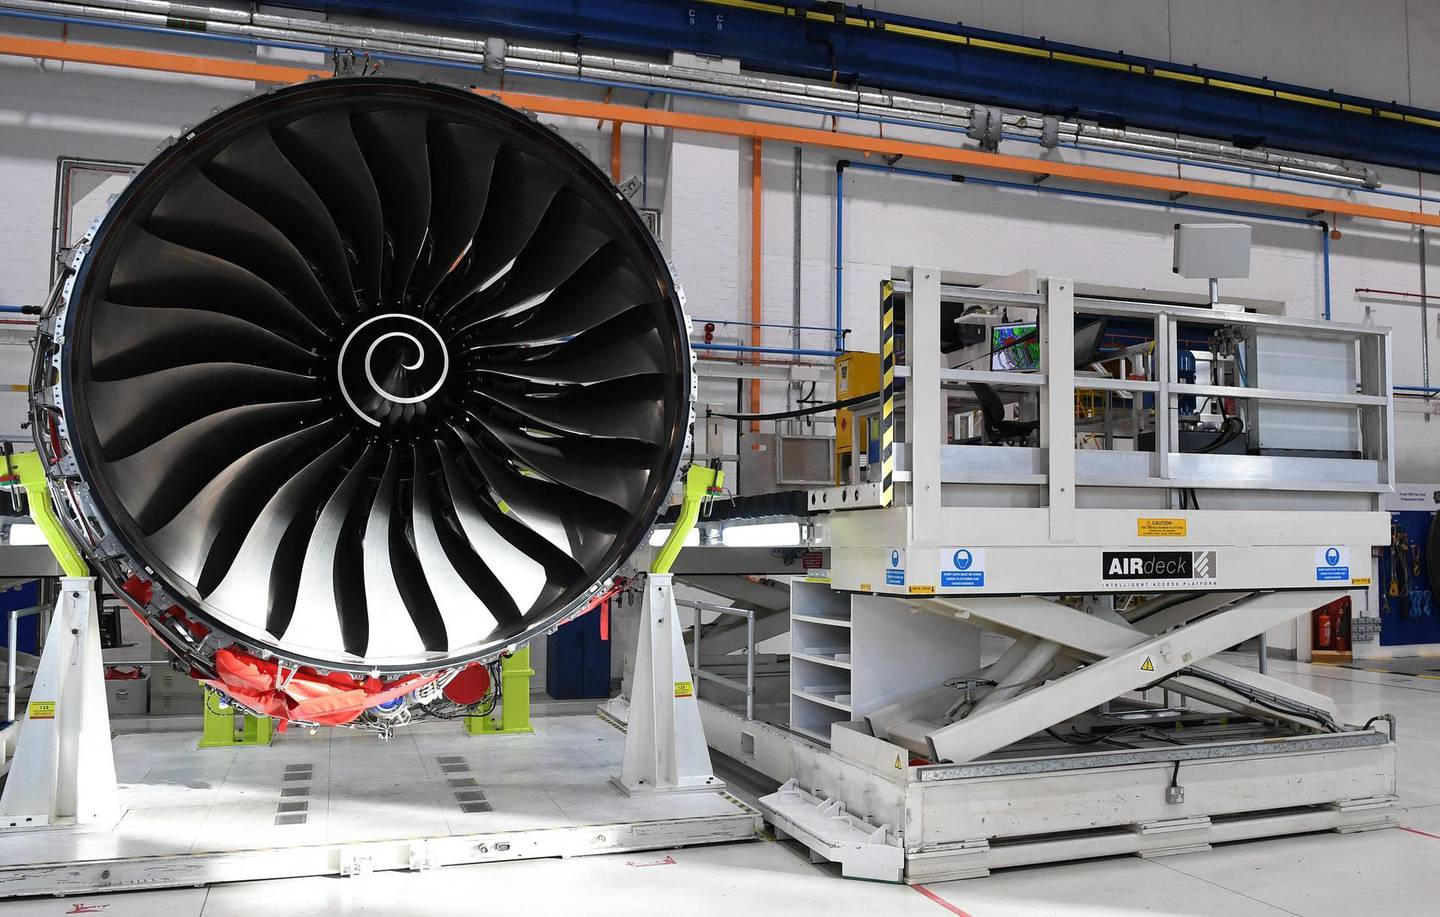 """(FILES) This file photograph taken on November 30, 2016, shows Rolls Royce Trent XWB engines on view on the assembly line at the Rolls Royce factory in Derby, central England. British aircraft engine maker Rolls-Royce said March 11, 2021, that its net losses more than doubled last year to £3.2 billion, hit by the fallout from the  coronavirus pandemic. The loss after tax, equivalent to $4.4 billion or 3.7 billion euros, compared with a loss of £1.3 billion in 2019, Rolls-Royce said. The Covid-19 pandemic had had a """"severe impact"""" on its performance, it added.  / AFP / POOL / Paul ELLIS"""